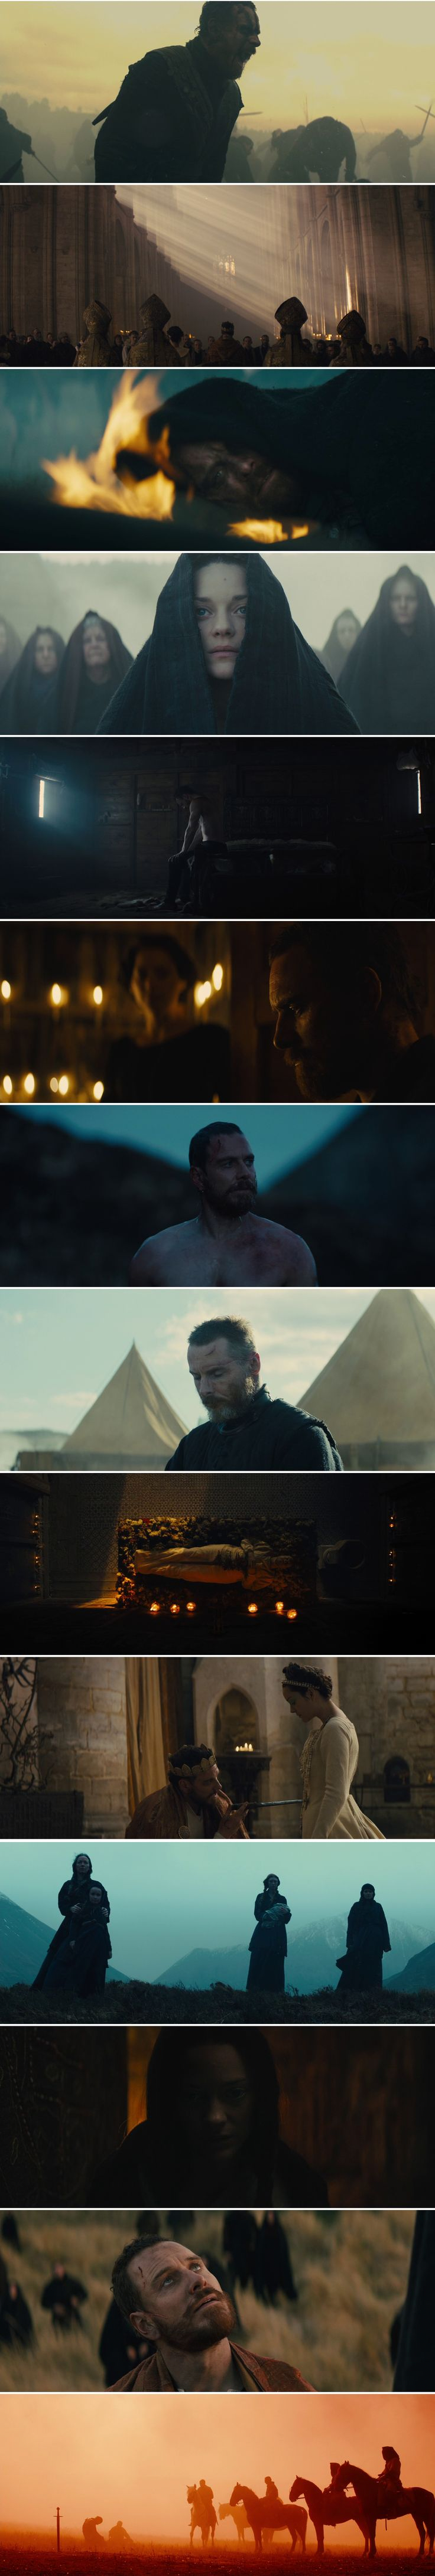 Macbeth (2015) Directed by Justin Kurzel. Cinematography by Adam Arkapaw.